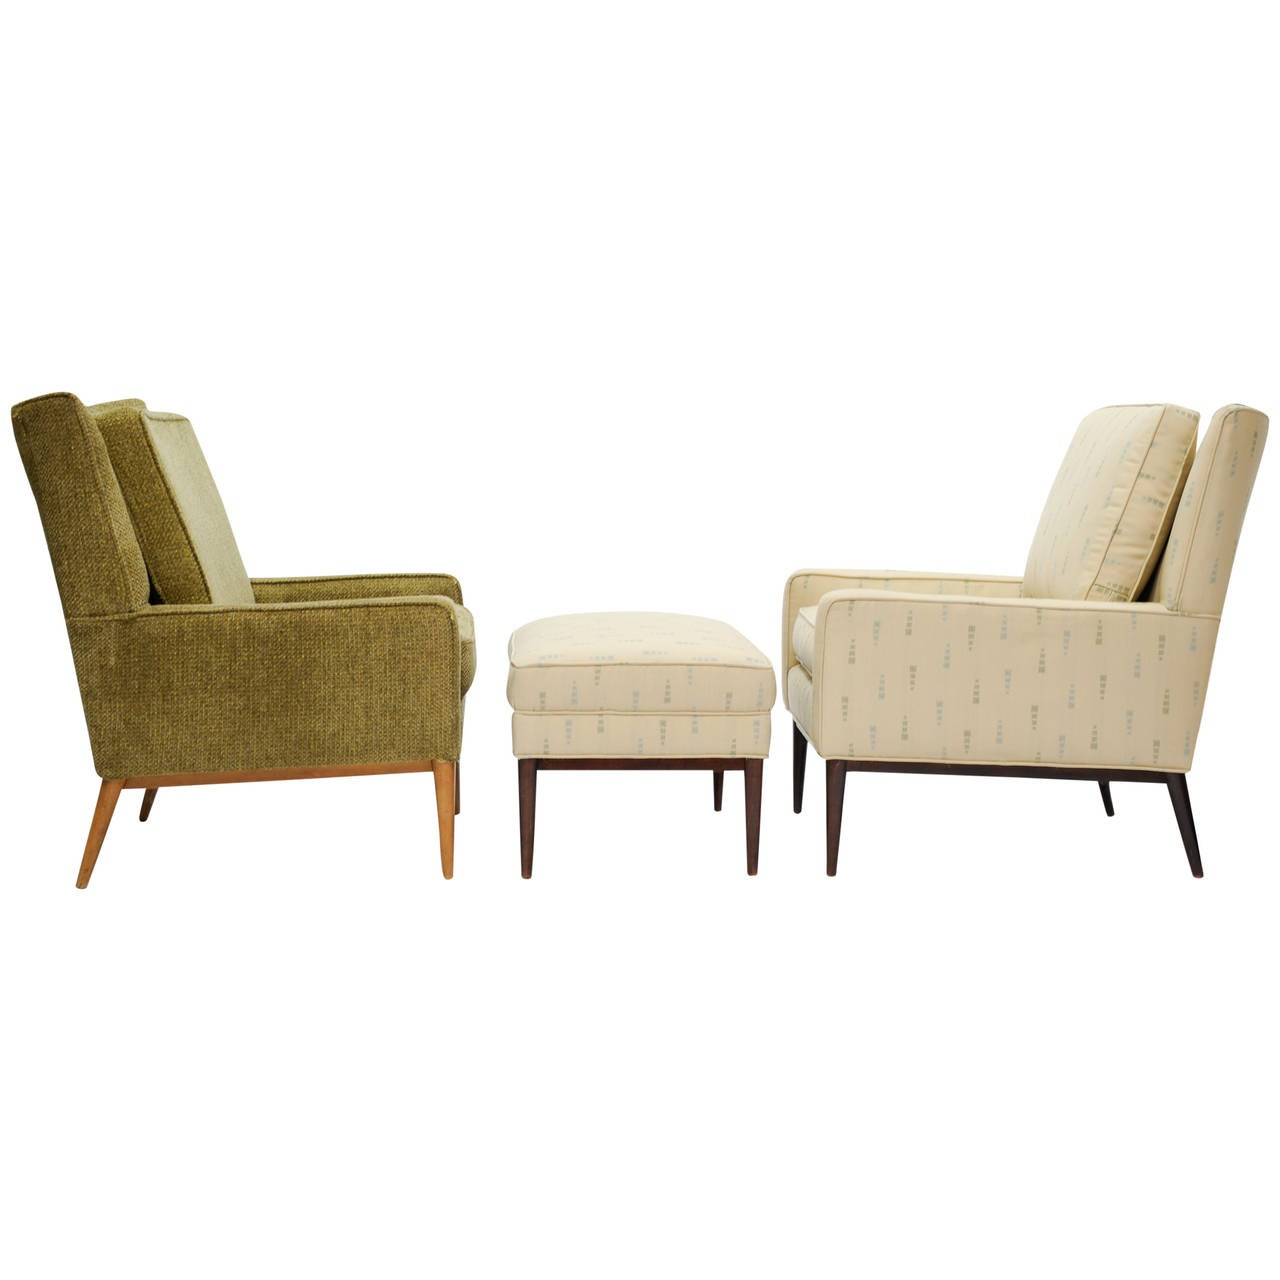 Paul Mccobb 1312 High Back Club Chairs And 314 Ottoman For Directional Furniture At 1stdibs